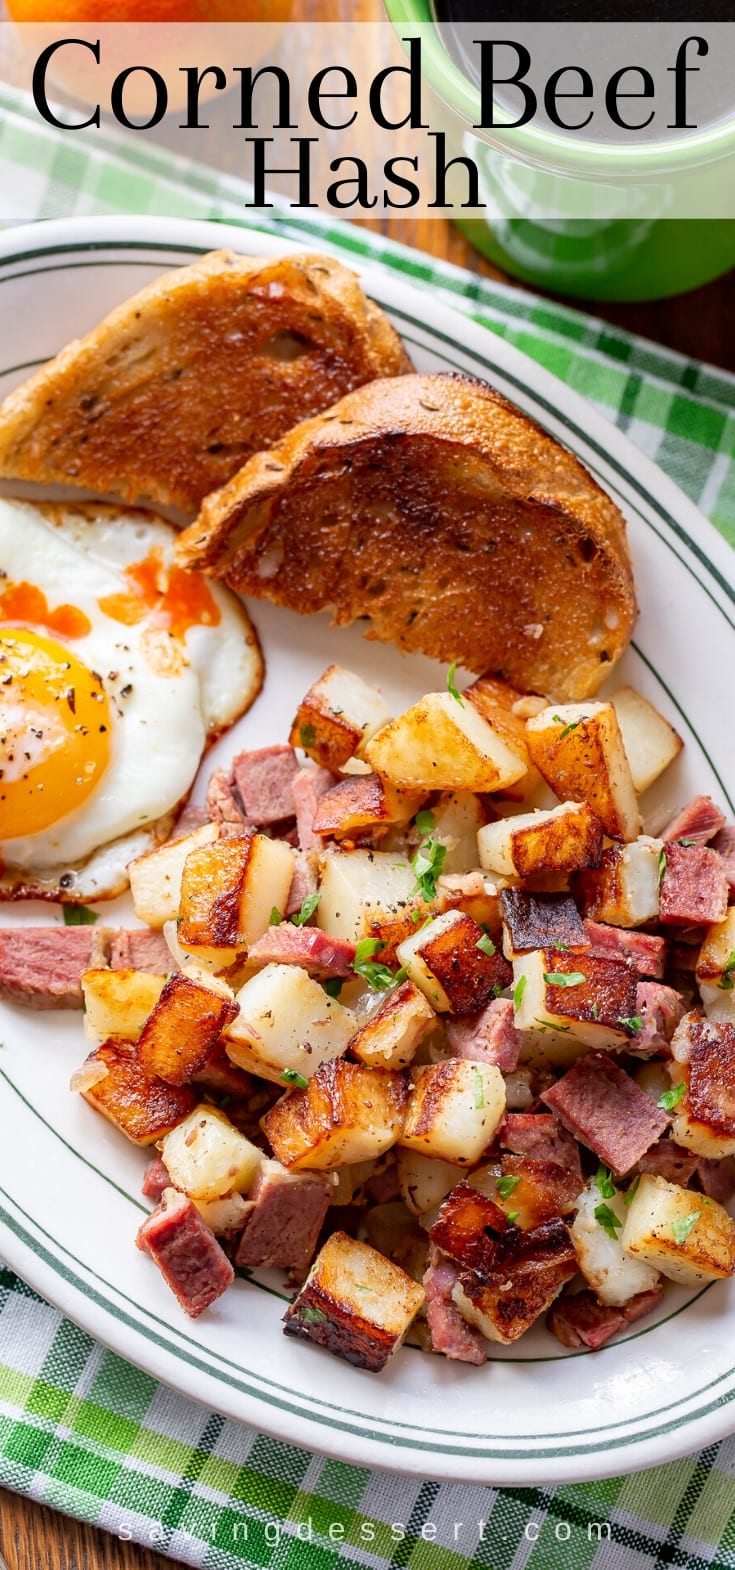 An overhead view of a plate of corned beef hash with an egg and toast